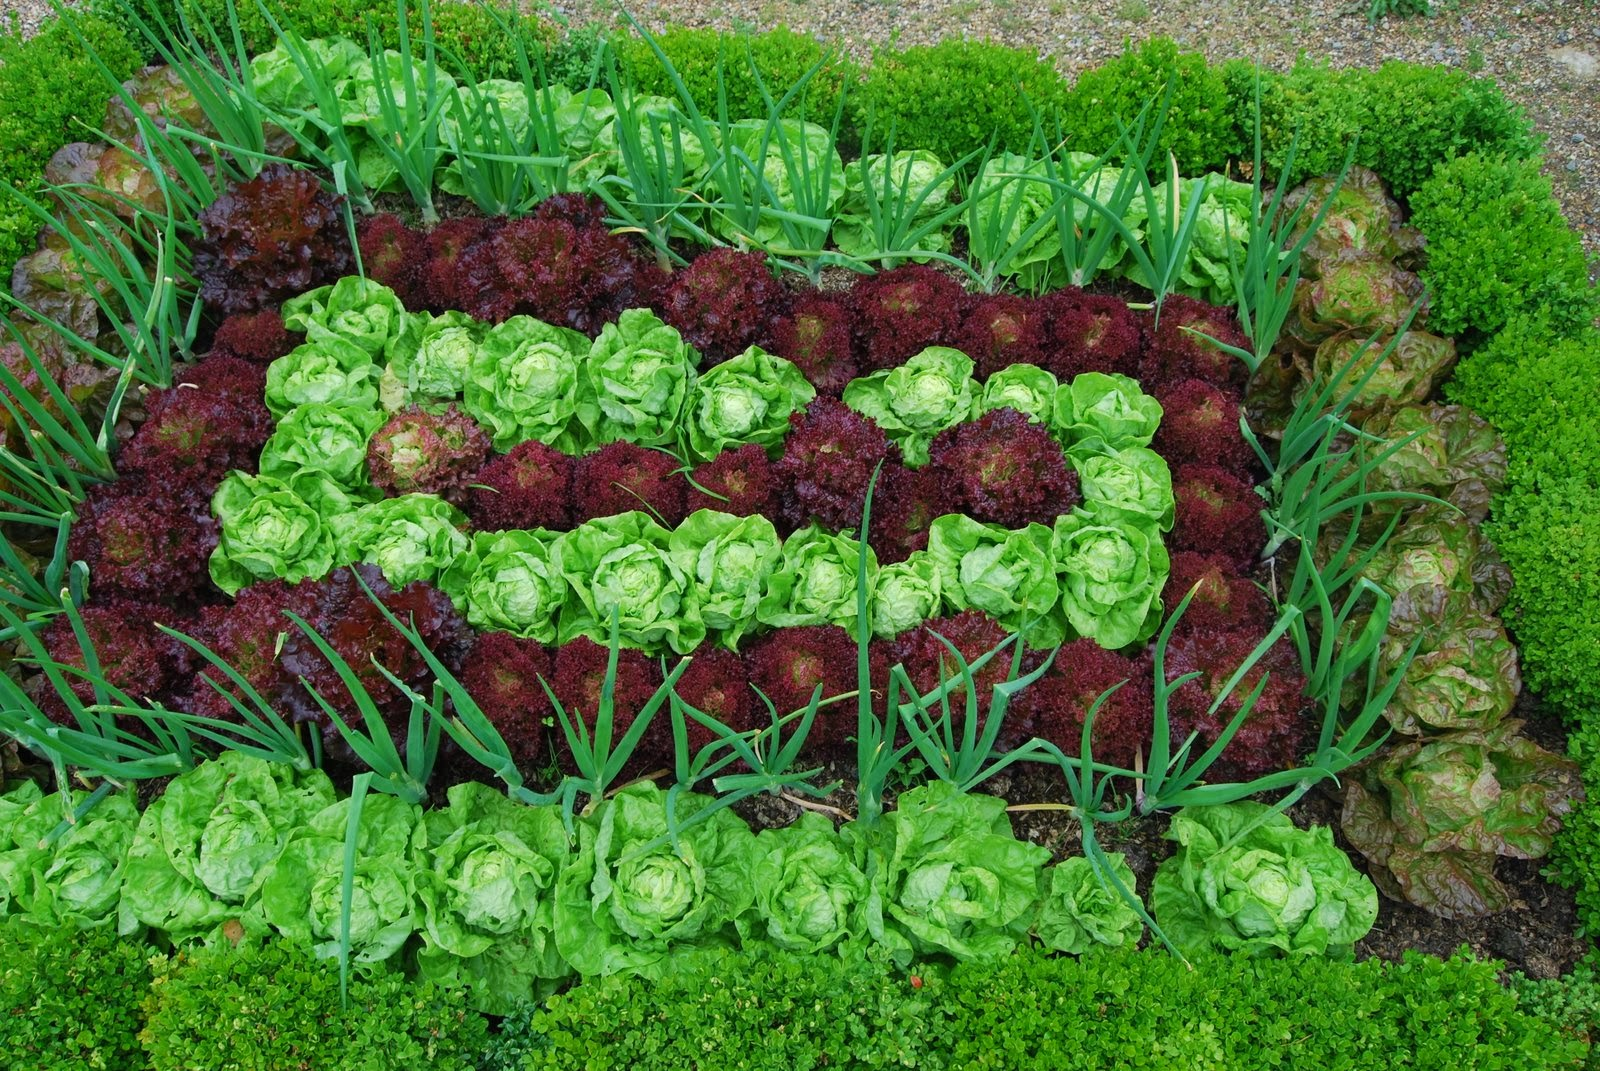 Ornamental salad patch with purple and green lettuce and onions